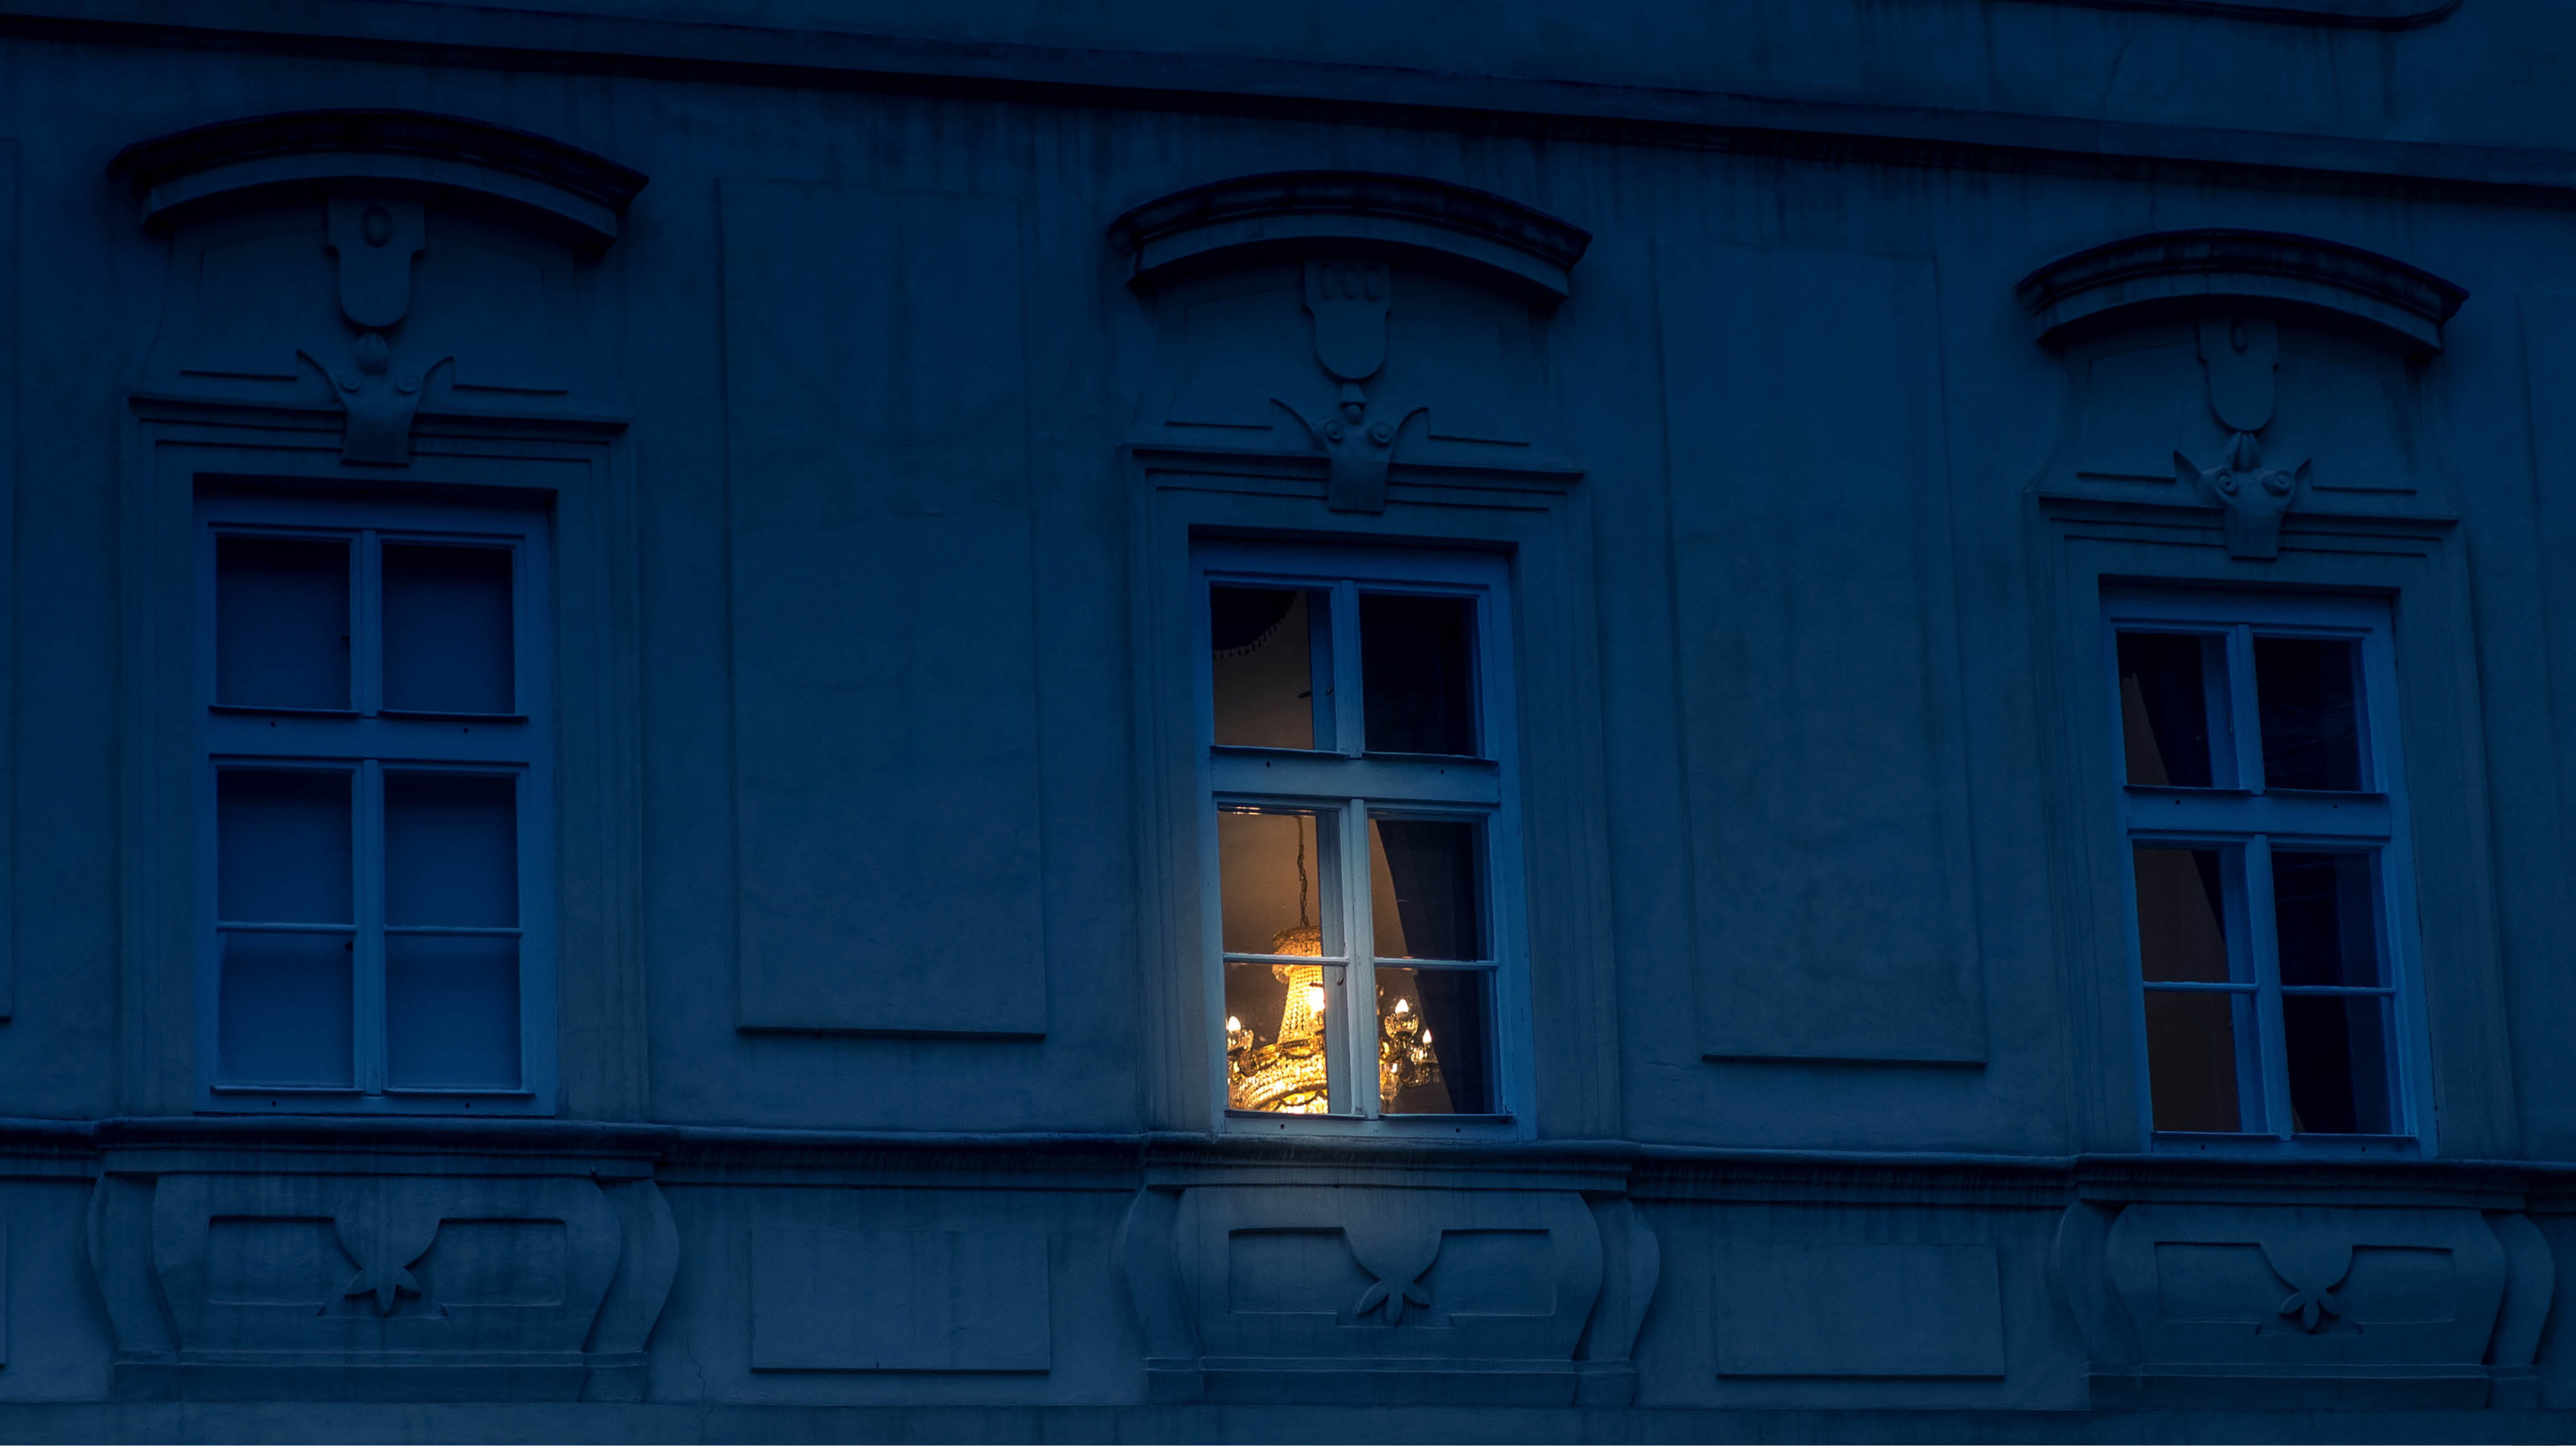 A photo of a window at night with a light shining through the window.